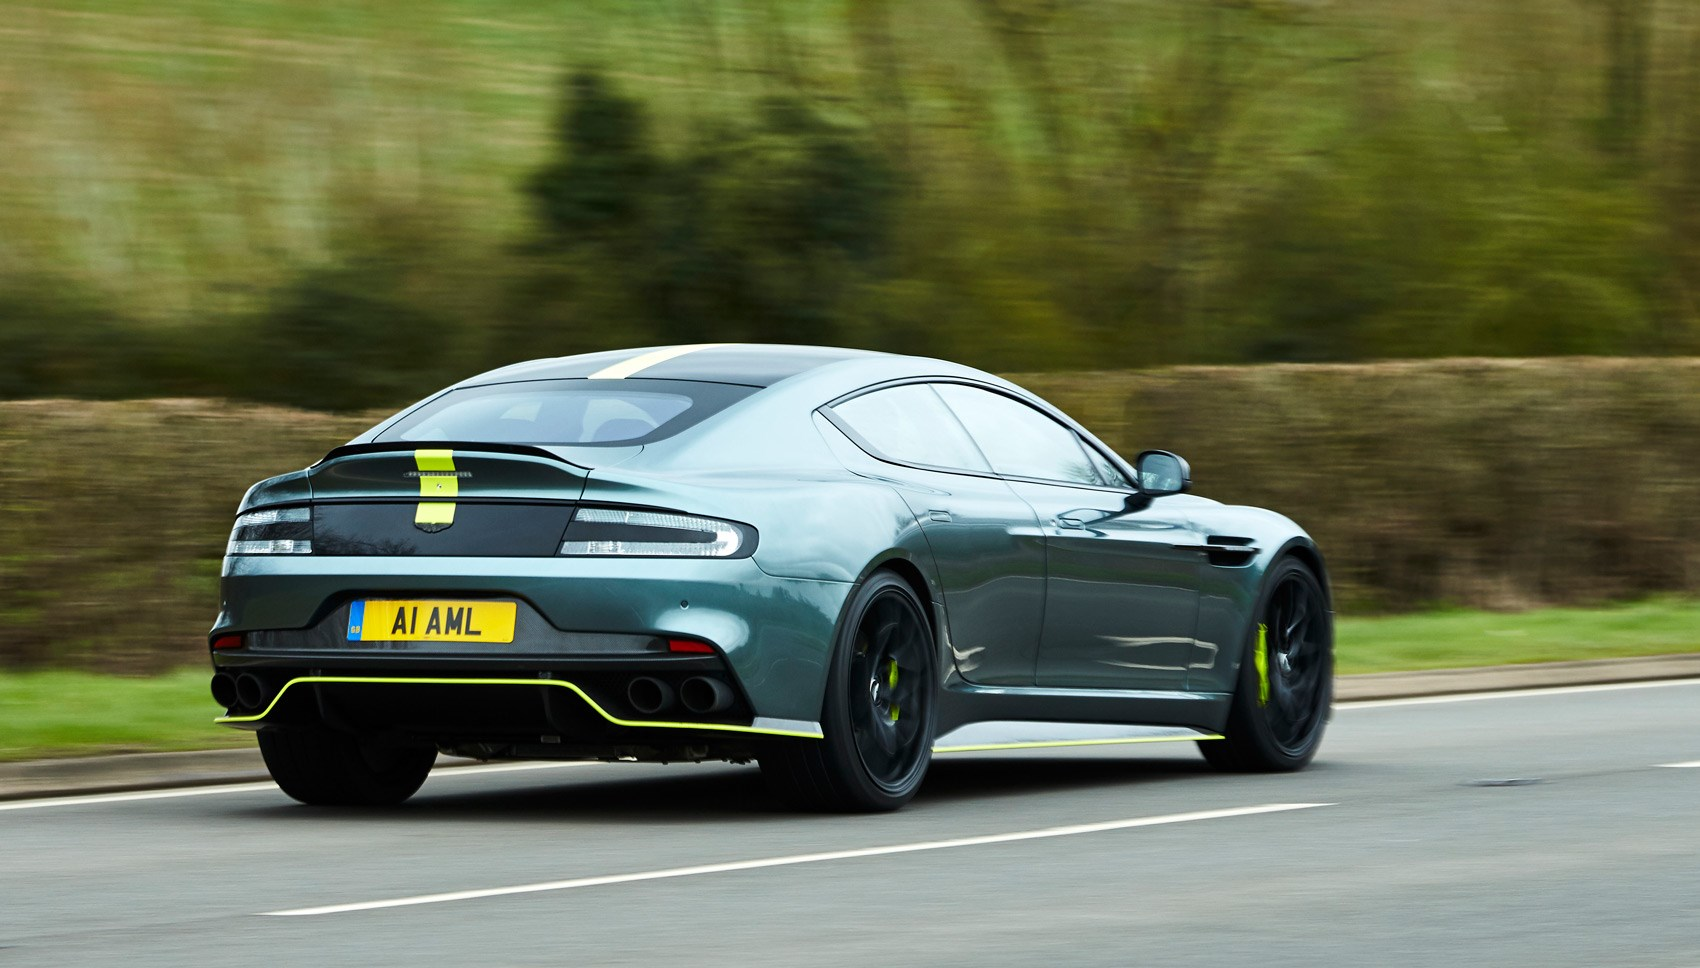 Aston Rapide AMR rear pan